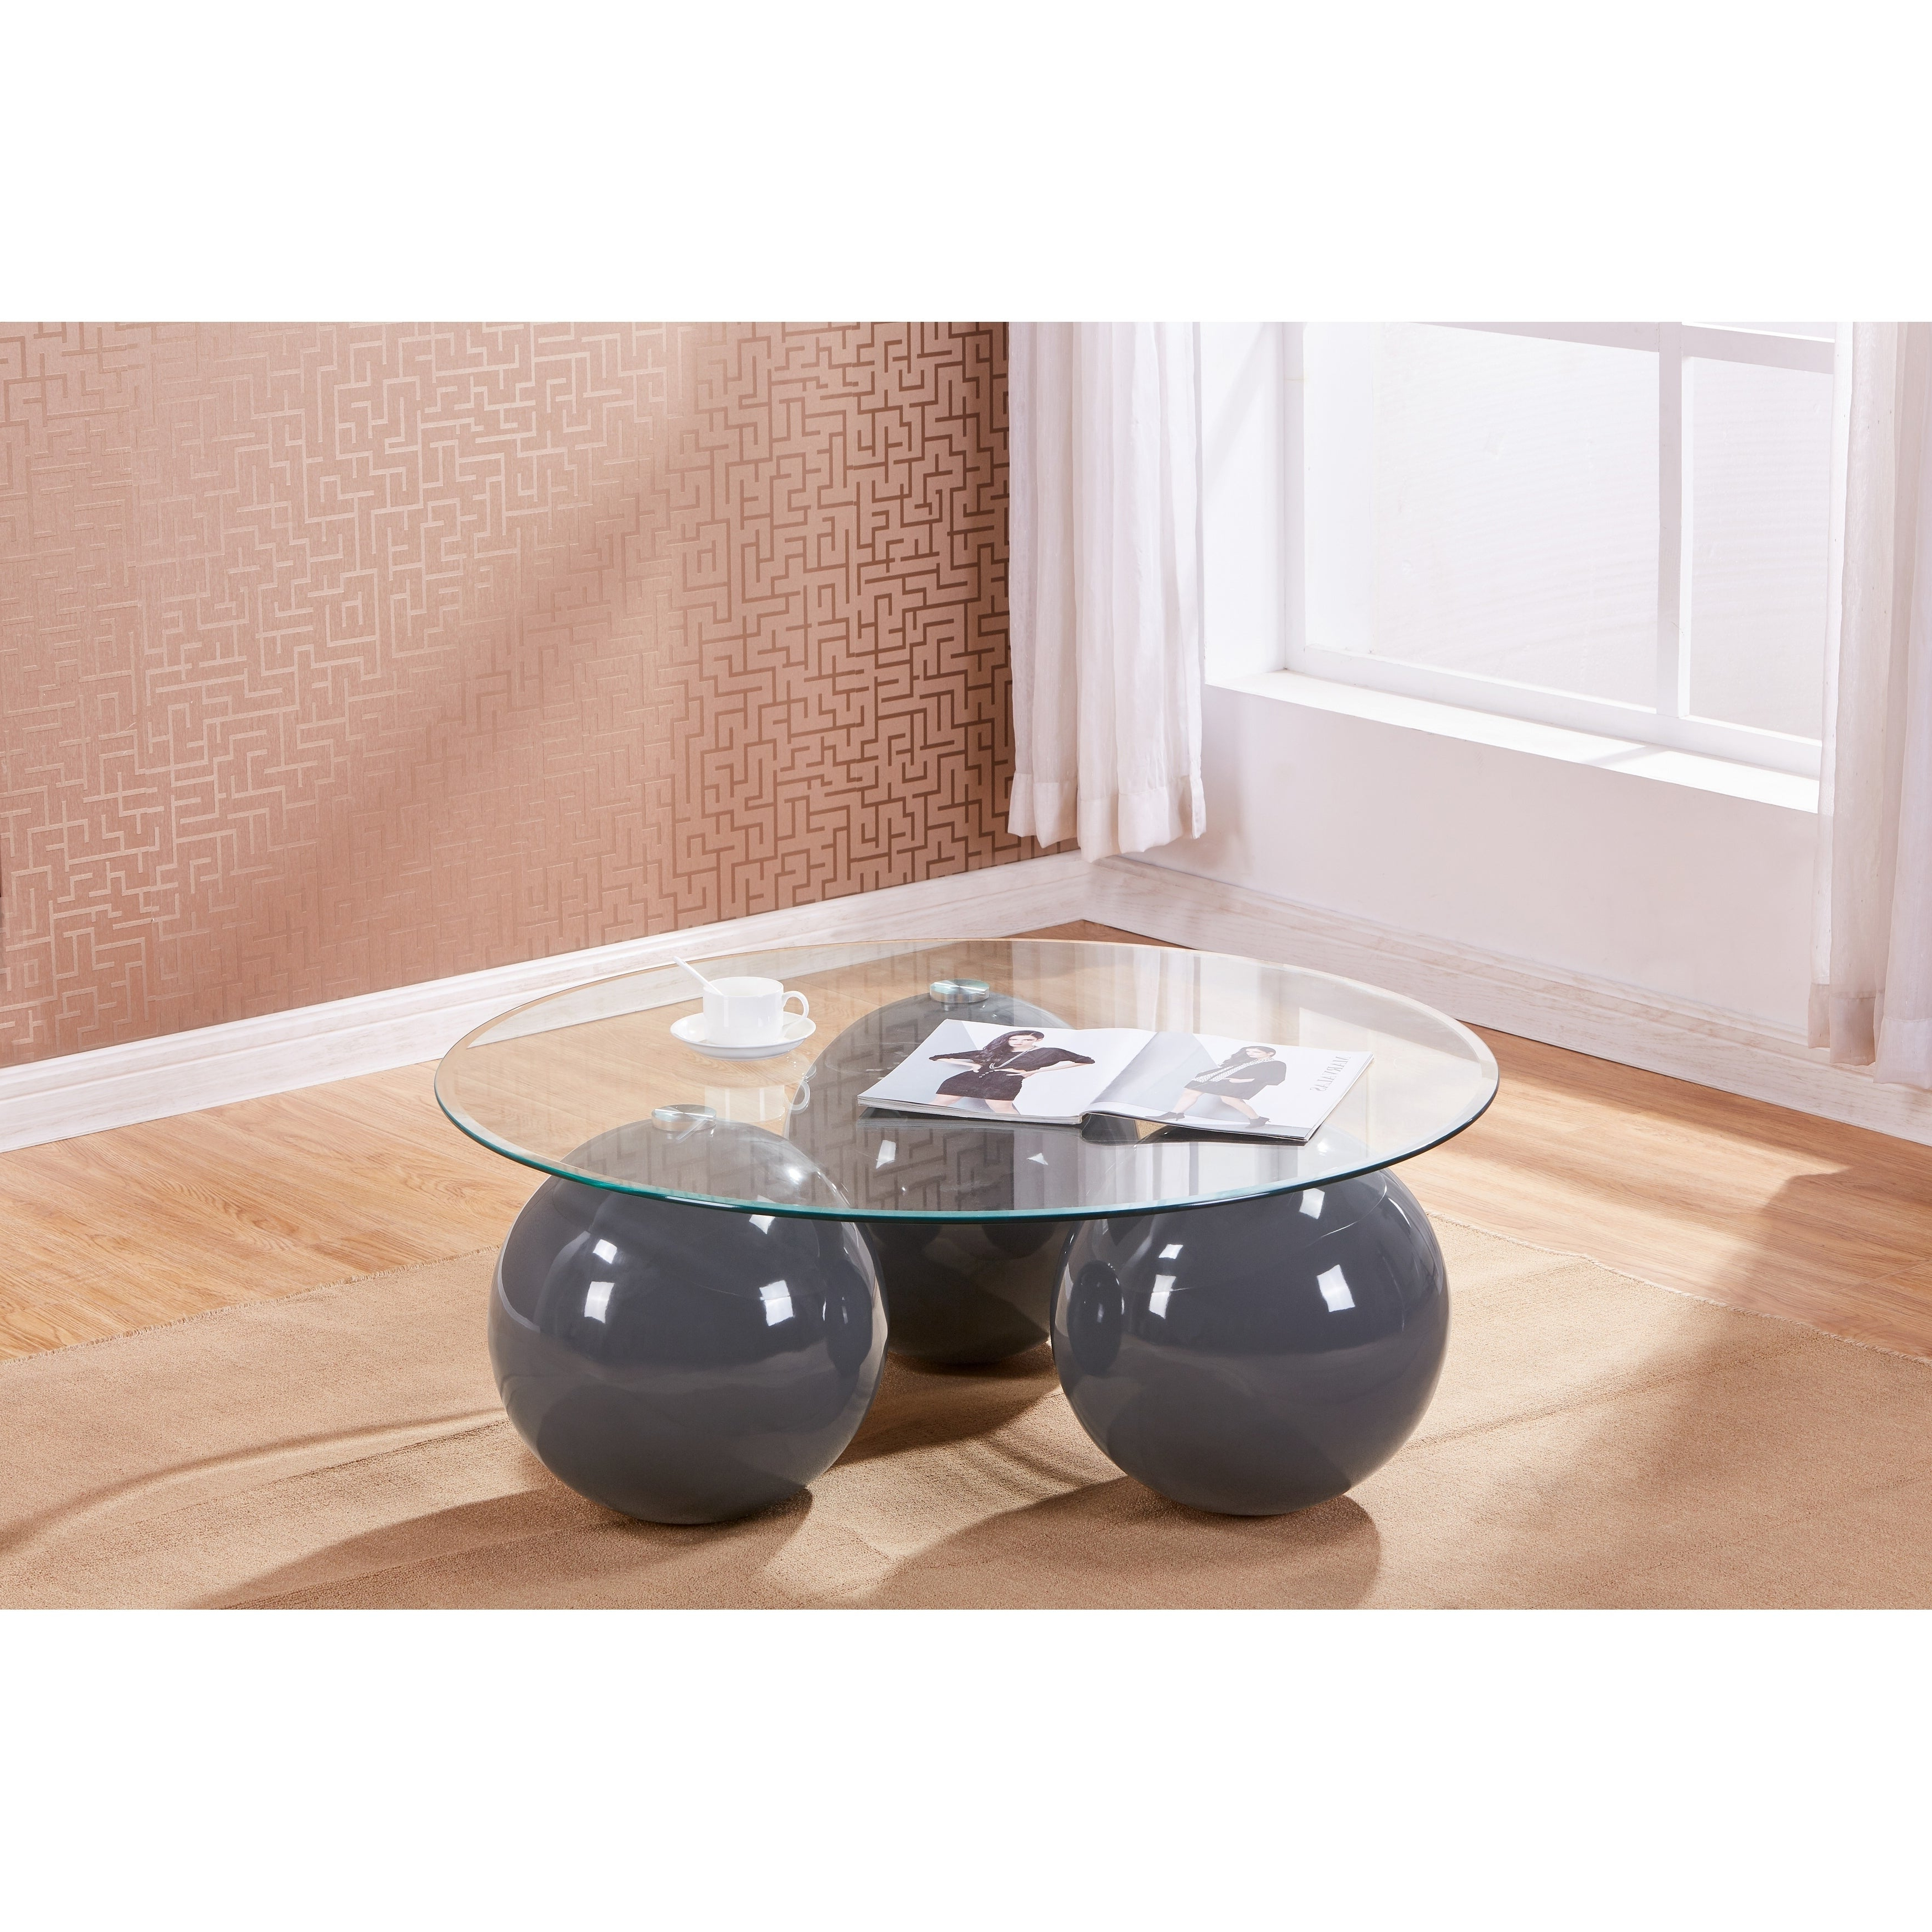 Best Quality Furniture Glass Top Coffee Table With 3 Sphere Base Pertaining To 2020 Strick & Bolton Totte O Shaped Coffee Tables (View 11 of 20)